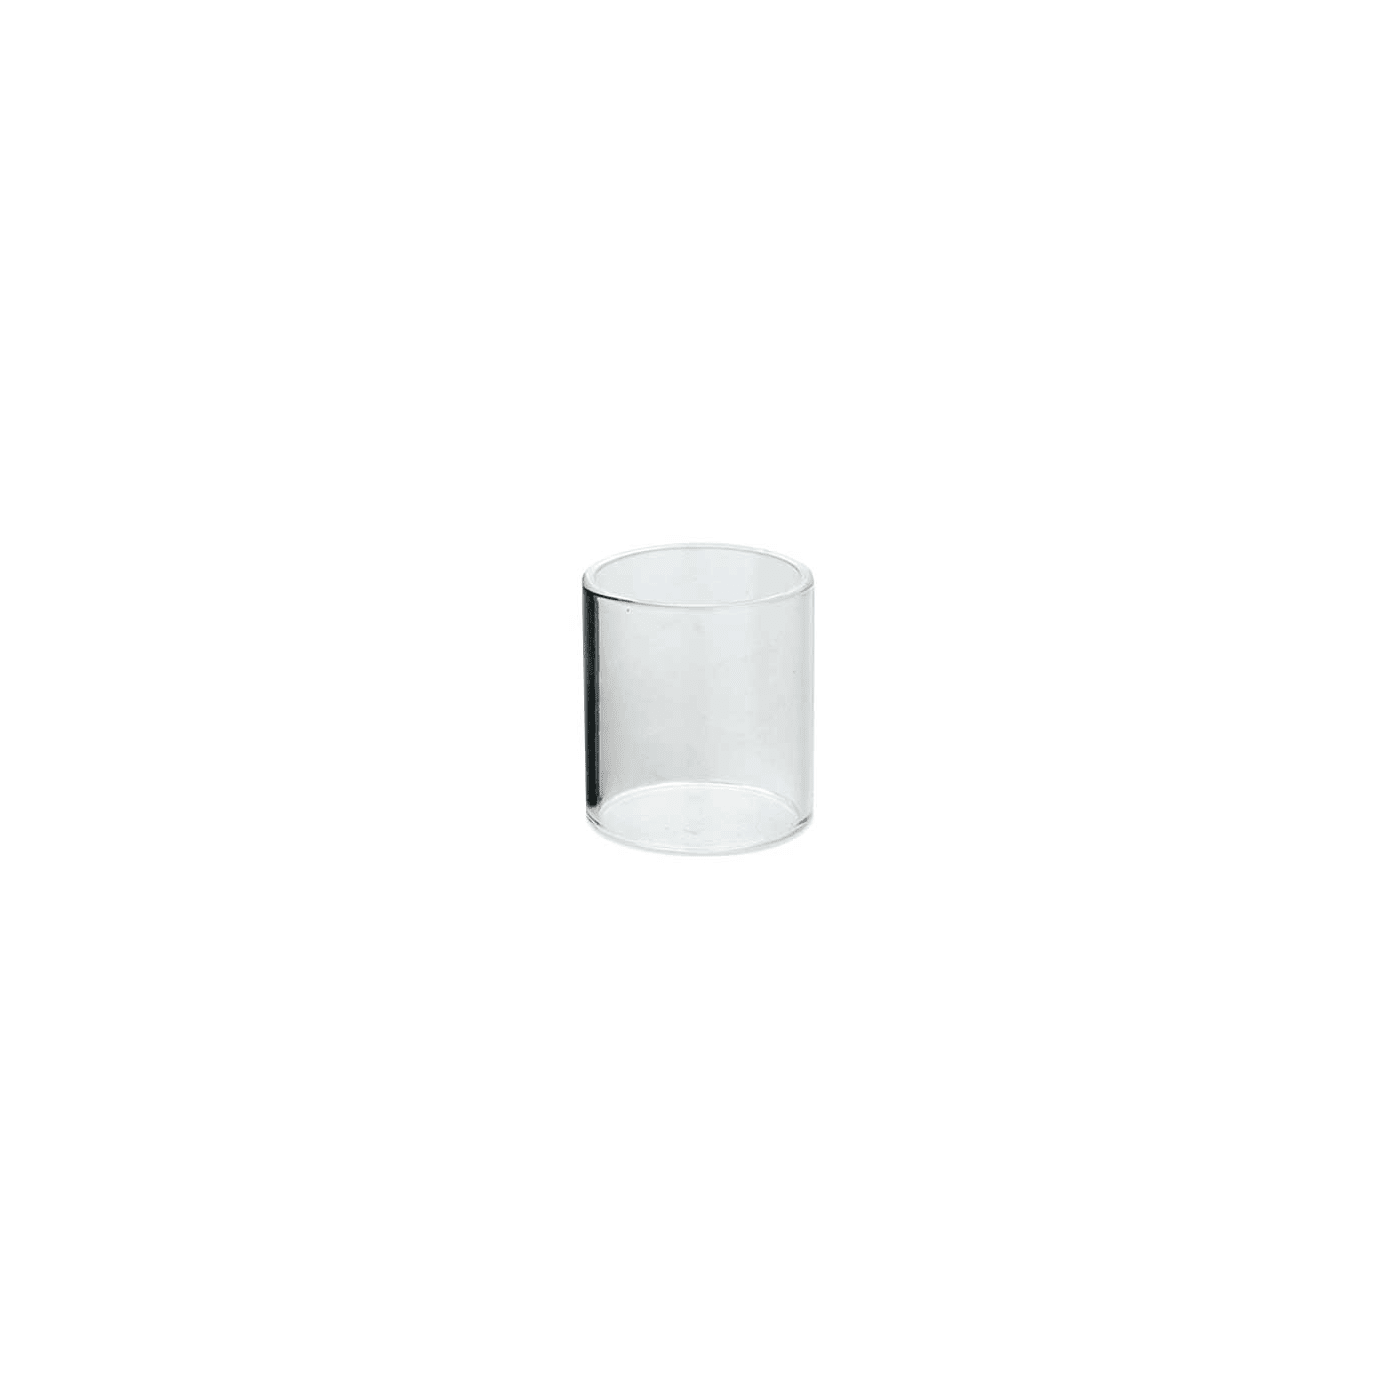 Aspire Cleito 120 Replacement Glass - 1 Pack